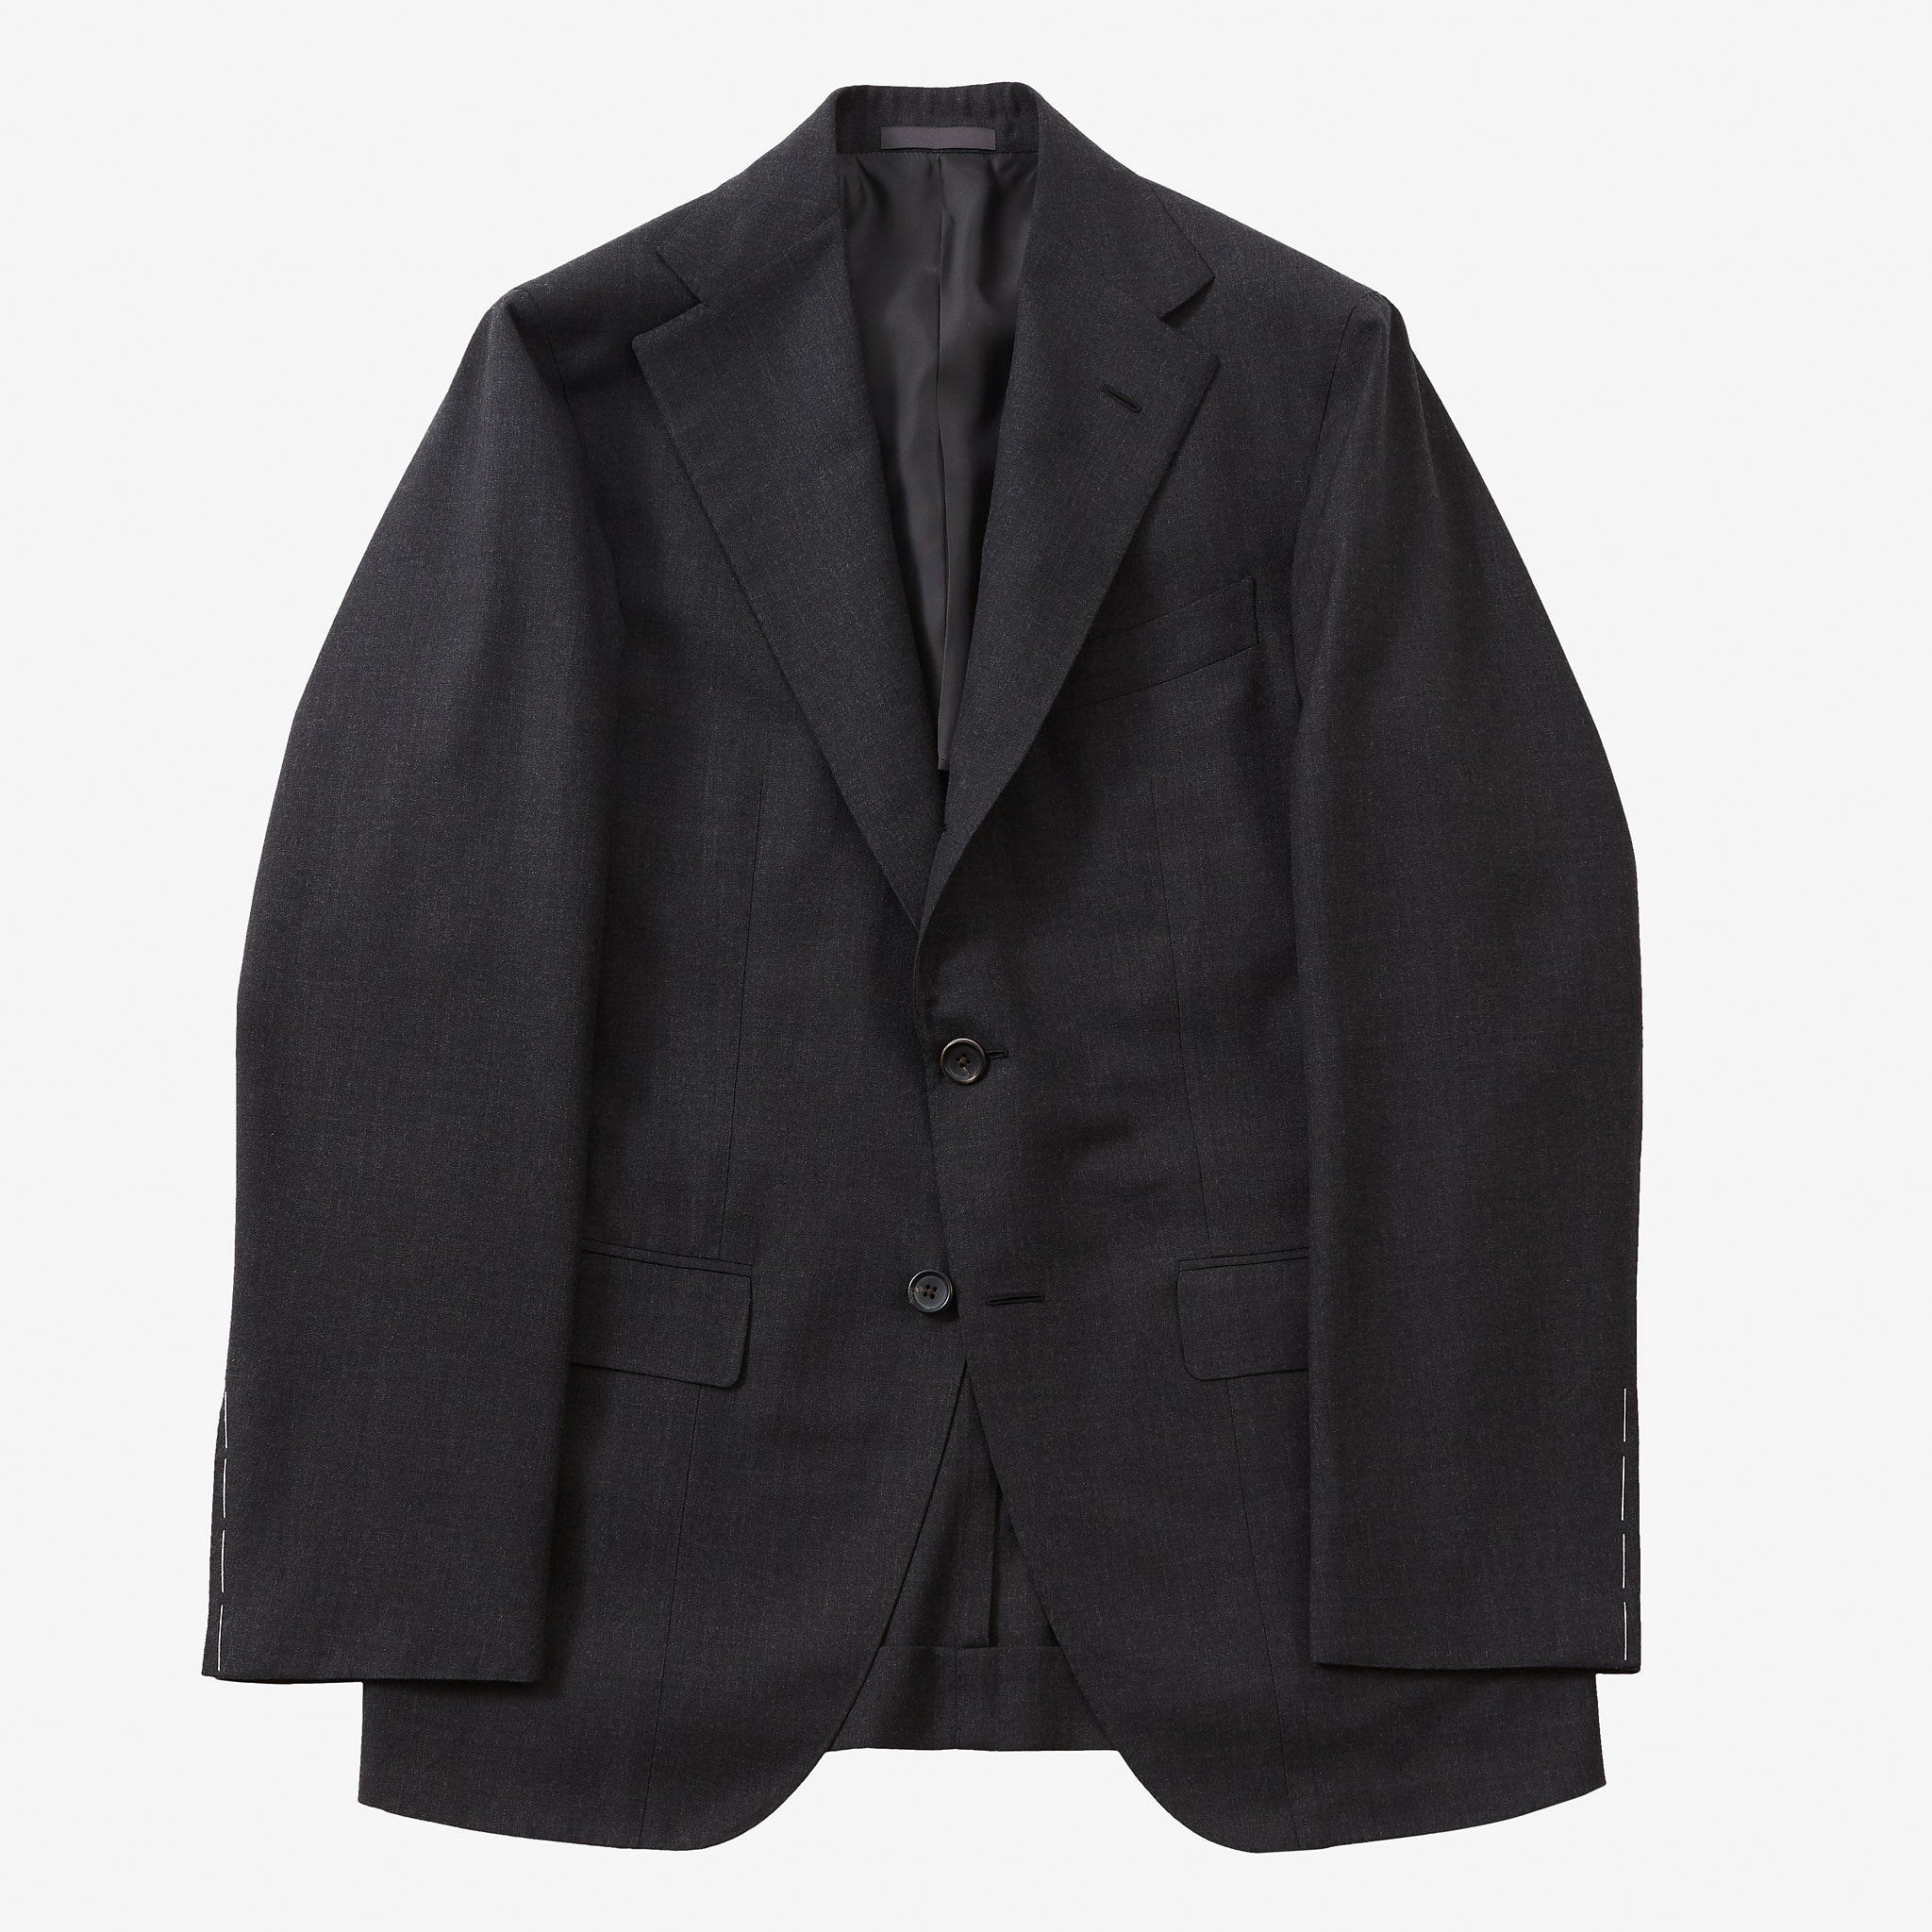 Single Breasted Suit House Wool Dark Grey